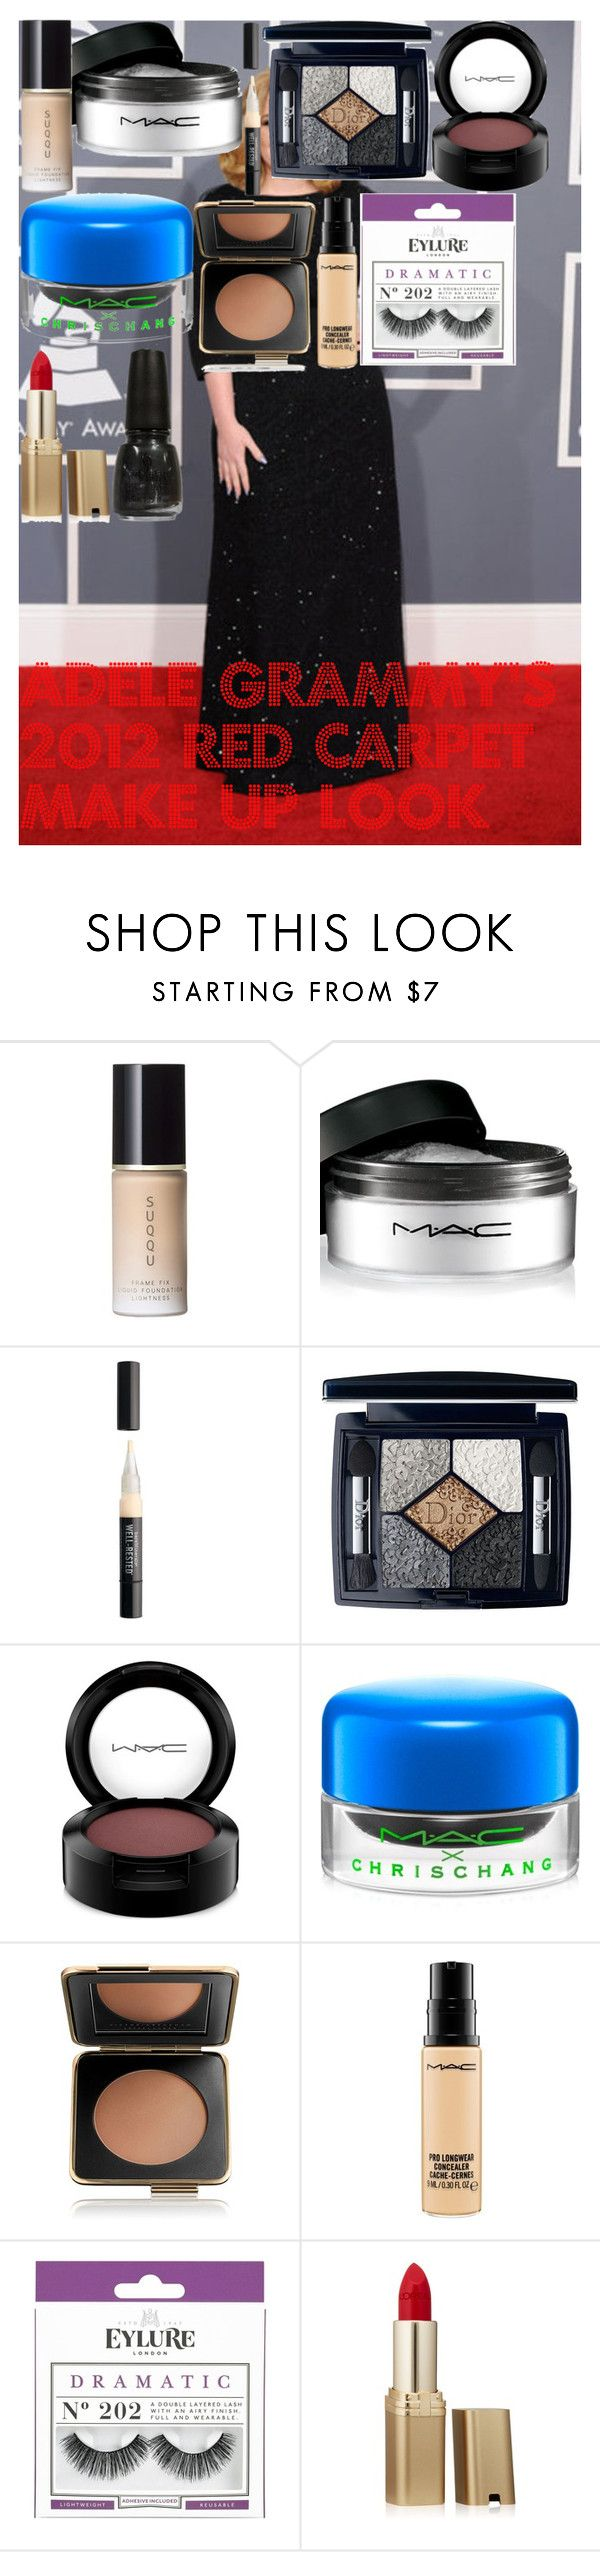 """""""Adele Grammy's 2012 Red Carpet make up look"""" by oroartye-1 on Polyvore featuring beauty, SUQQU, MAC Cosmetics, Bare Escentuals, Christian Dior, Estée Lauder, eylure, L'Oréal Paris and China Glaze"""